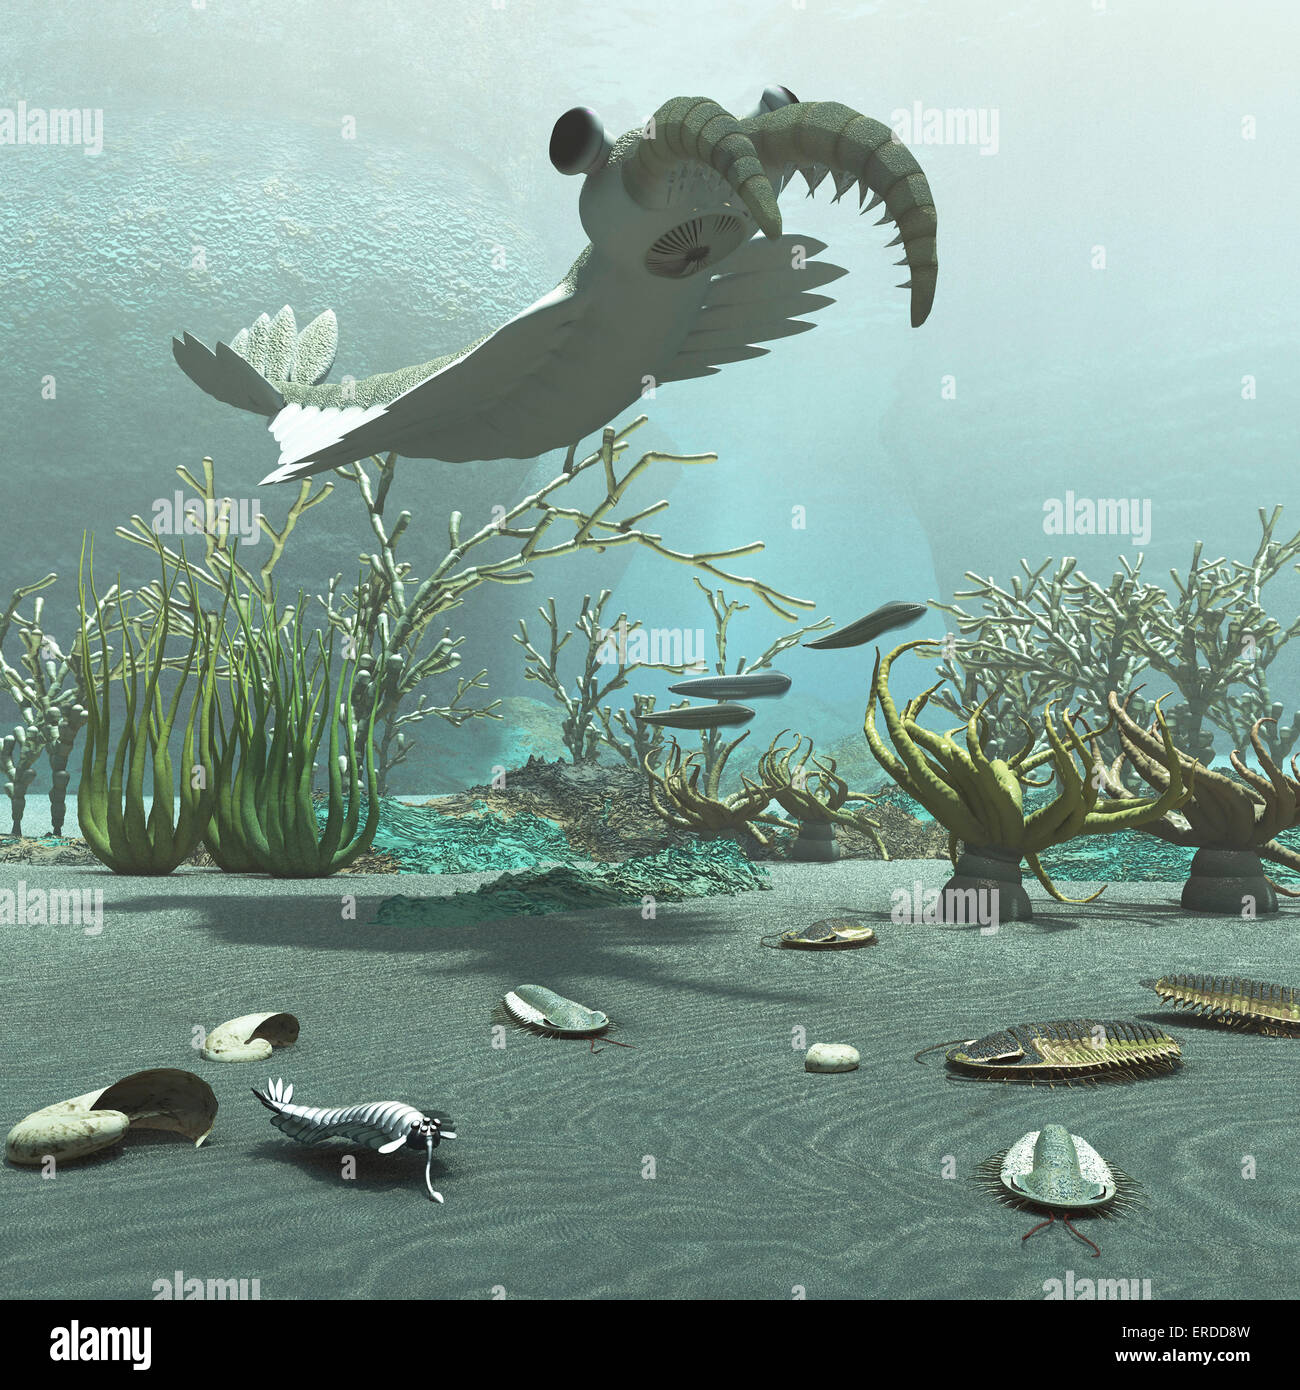 Animals and floral life from the Cambrian period about 500